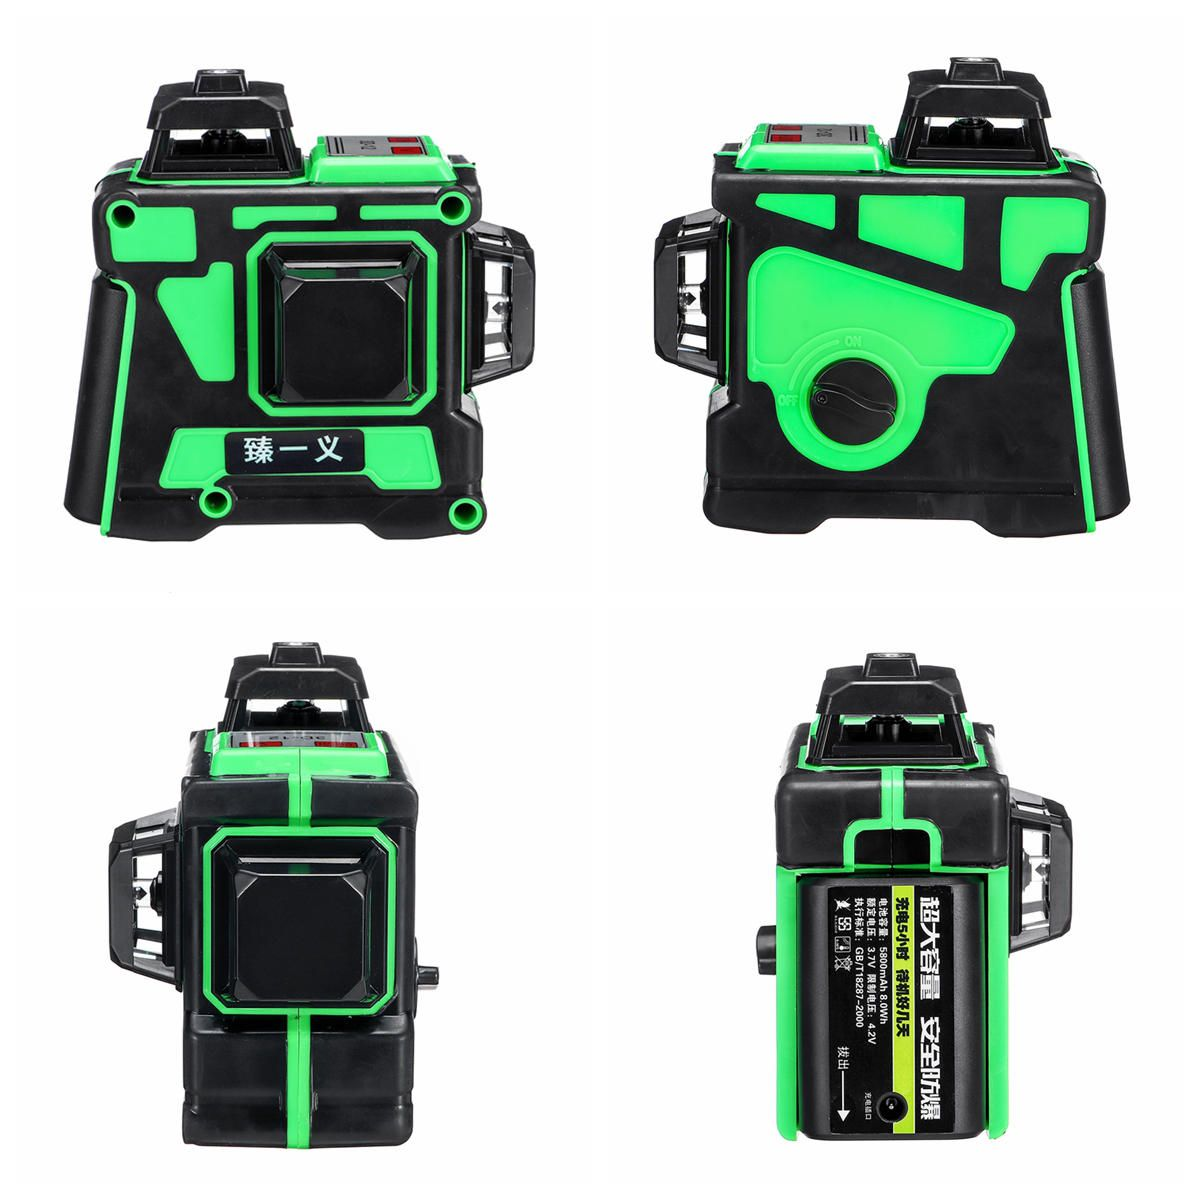 IYX US$82.04 12 Lines 360 Degree Horizontal&Vertical Cross 3D Green Laser Level Self